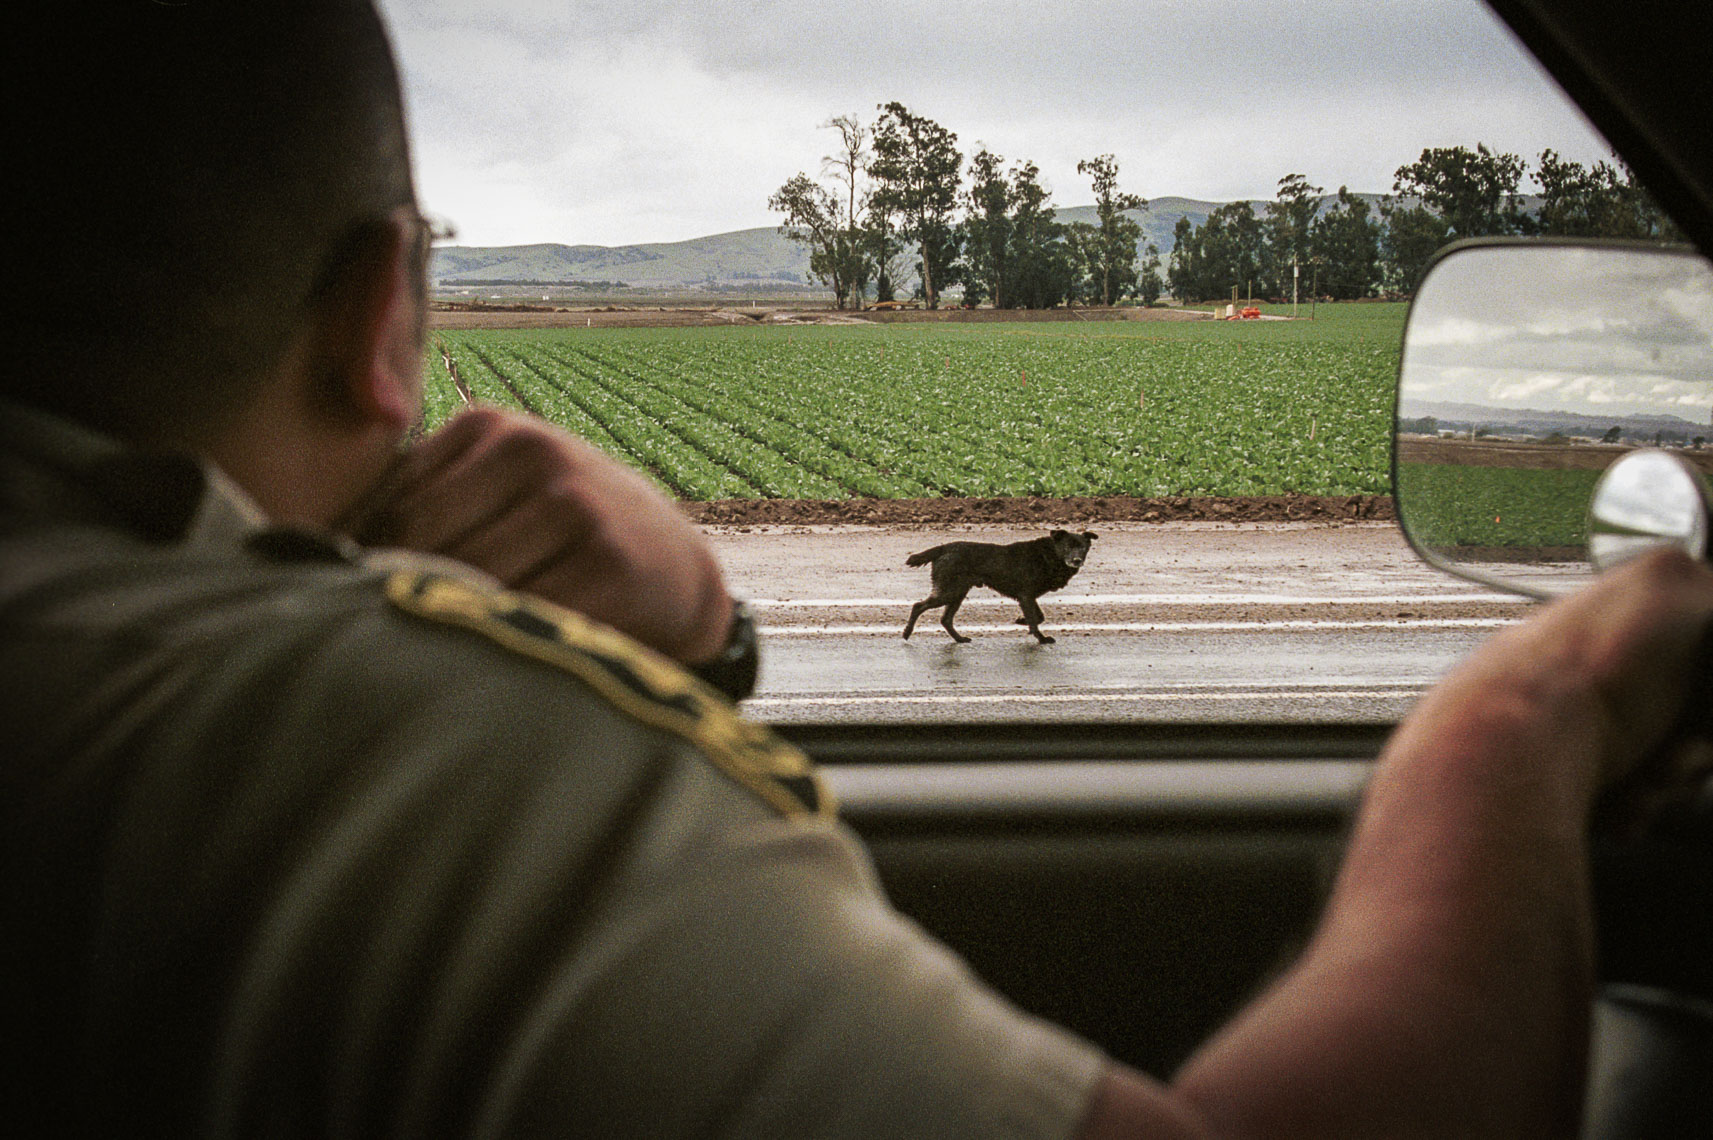 patrick_cavan_brown_dog_catcher_pound_animal_control-13